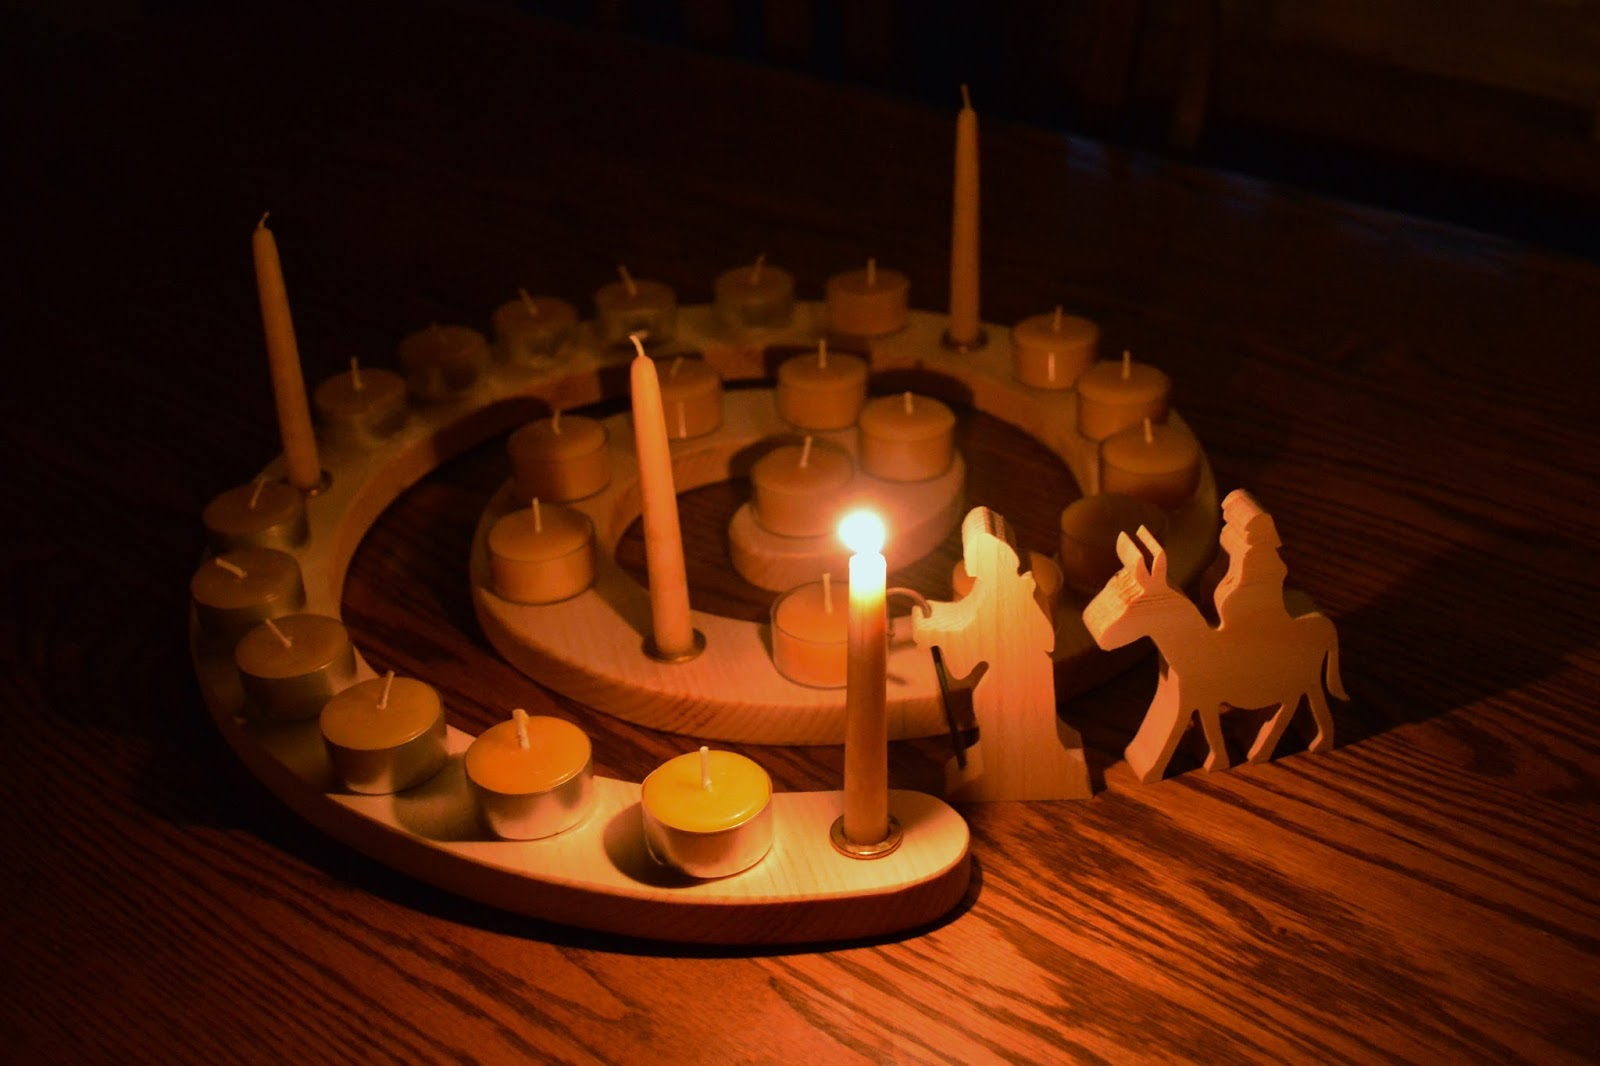 On Saturday night once my little man was sound asleep I spent time preparing our home for Advent. Our dining table was cleared and placed in the center ... : advent lighting - www.canuckmediamonitor.org